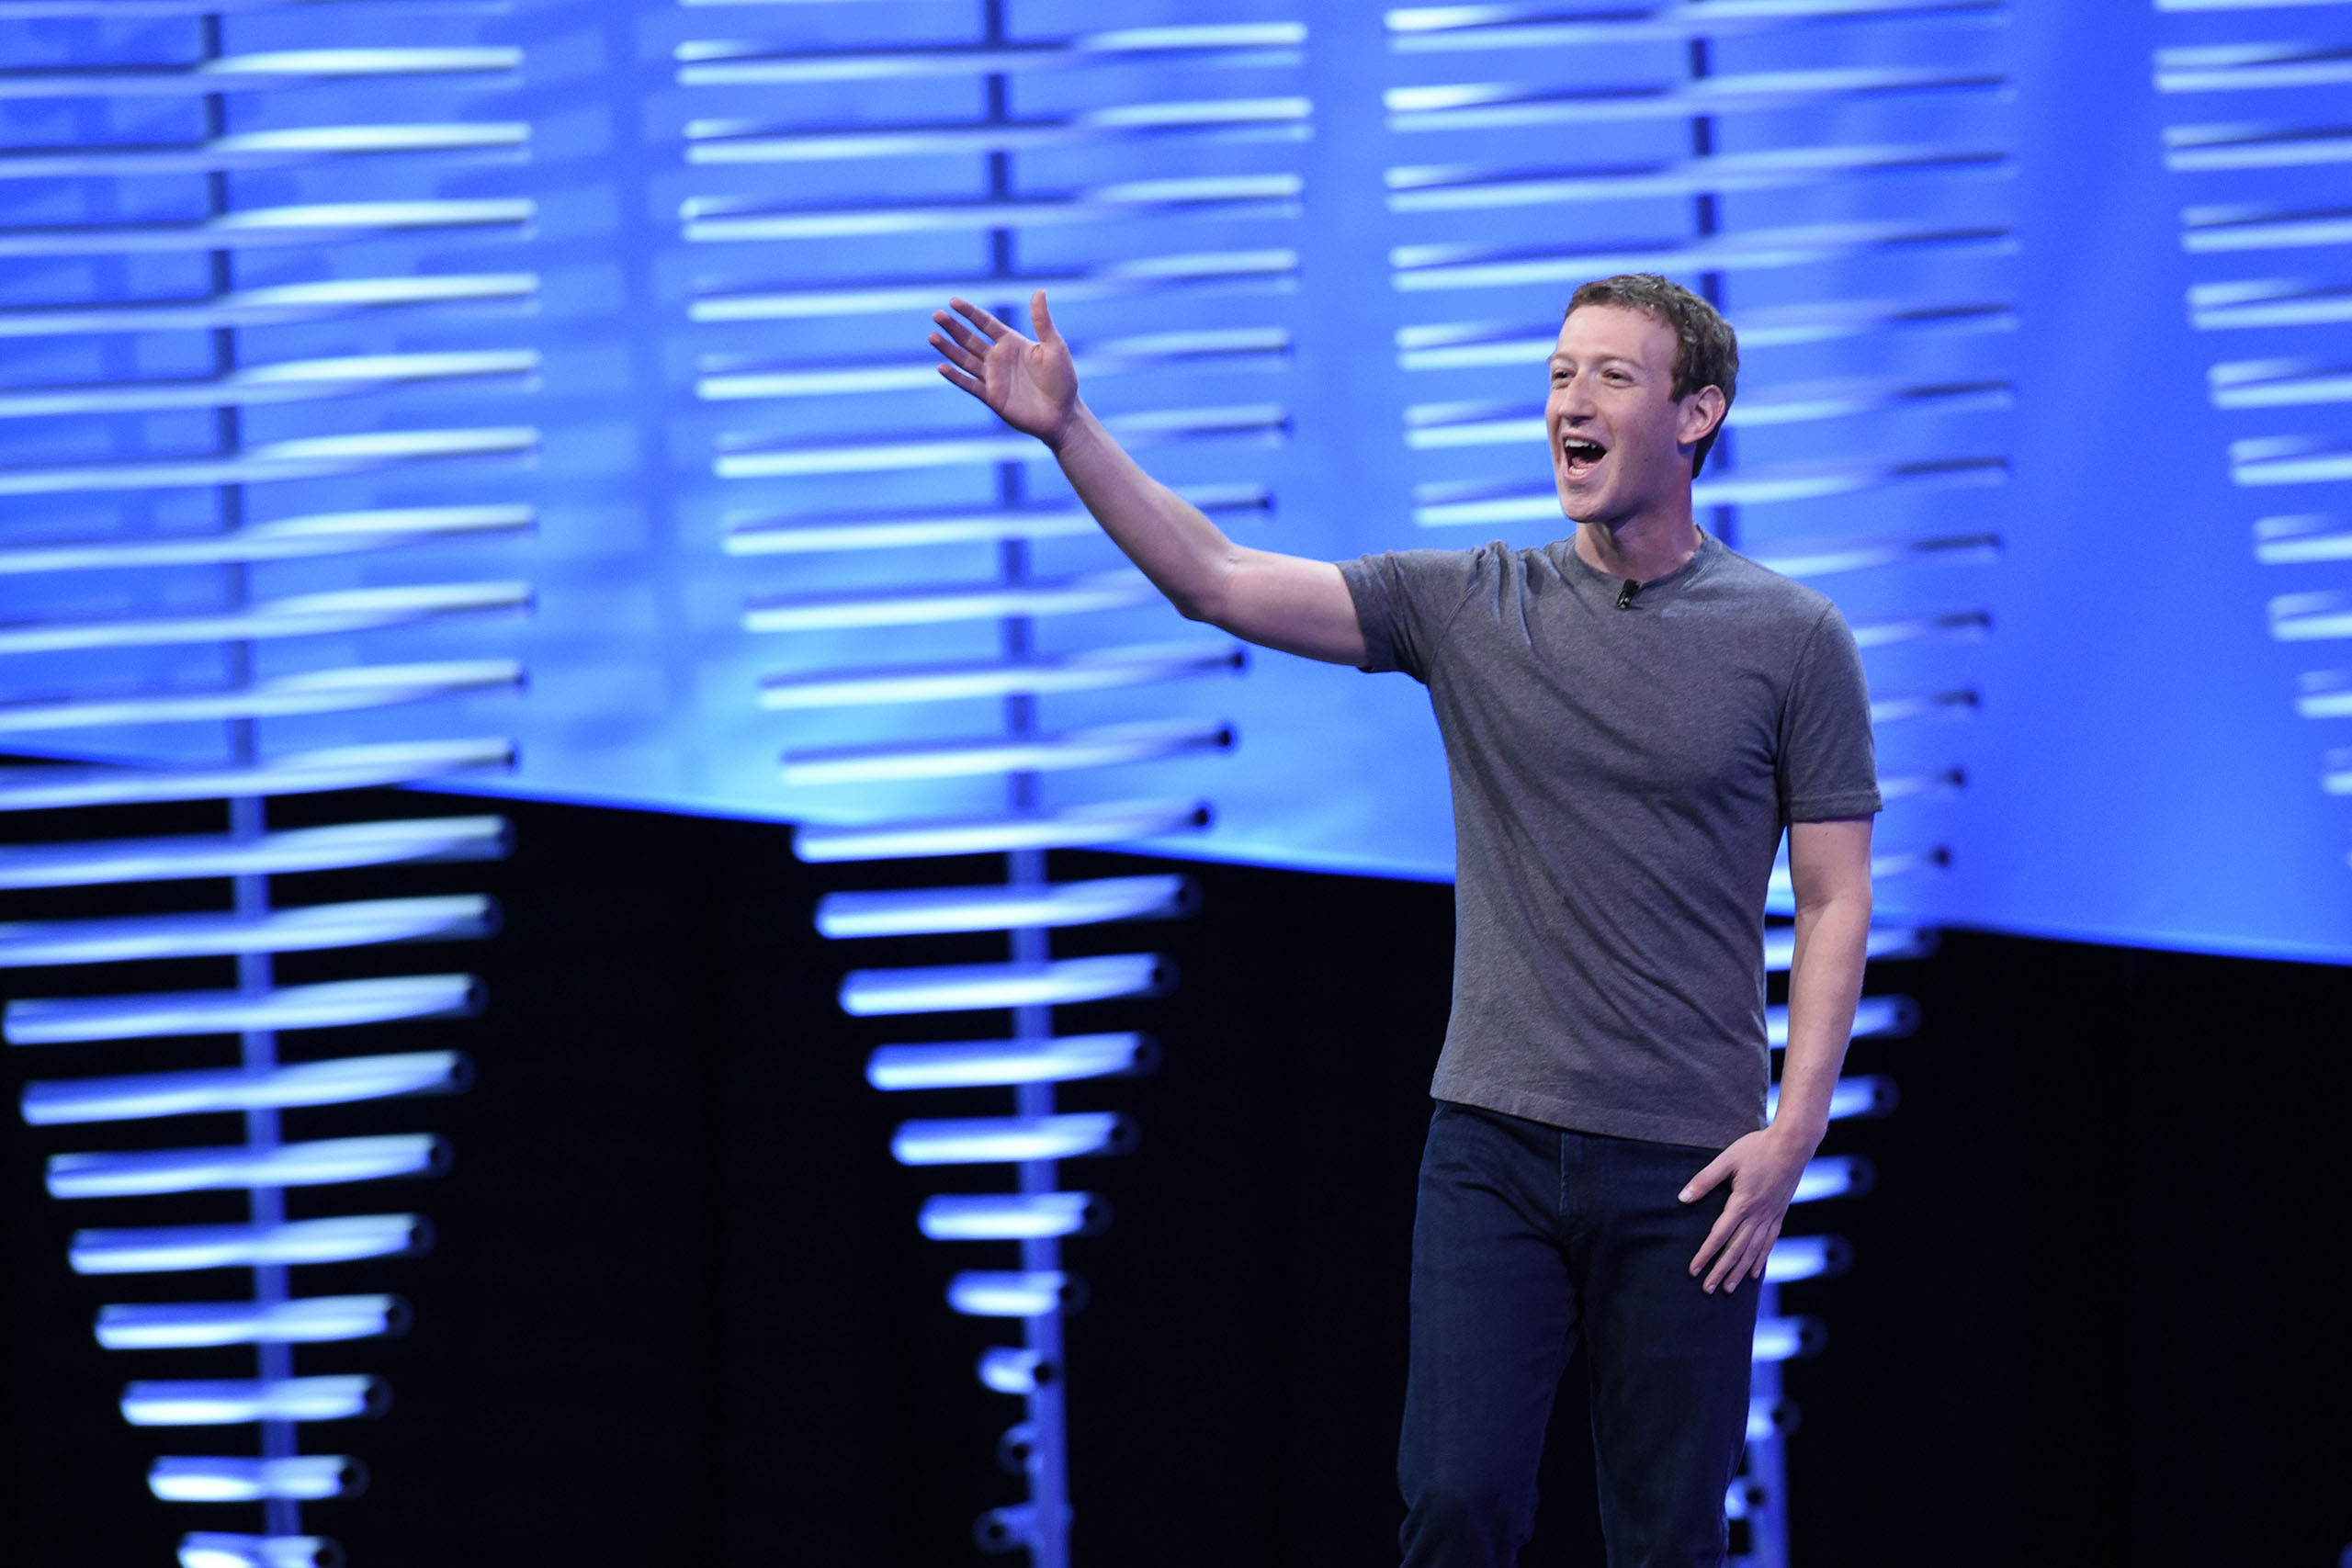 Mark Zuckerberg speaks during the Facebook F8 Developers Conference in San Francisco, Calif., April 12, 2016.